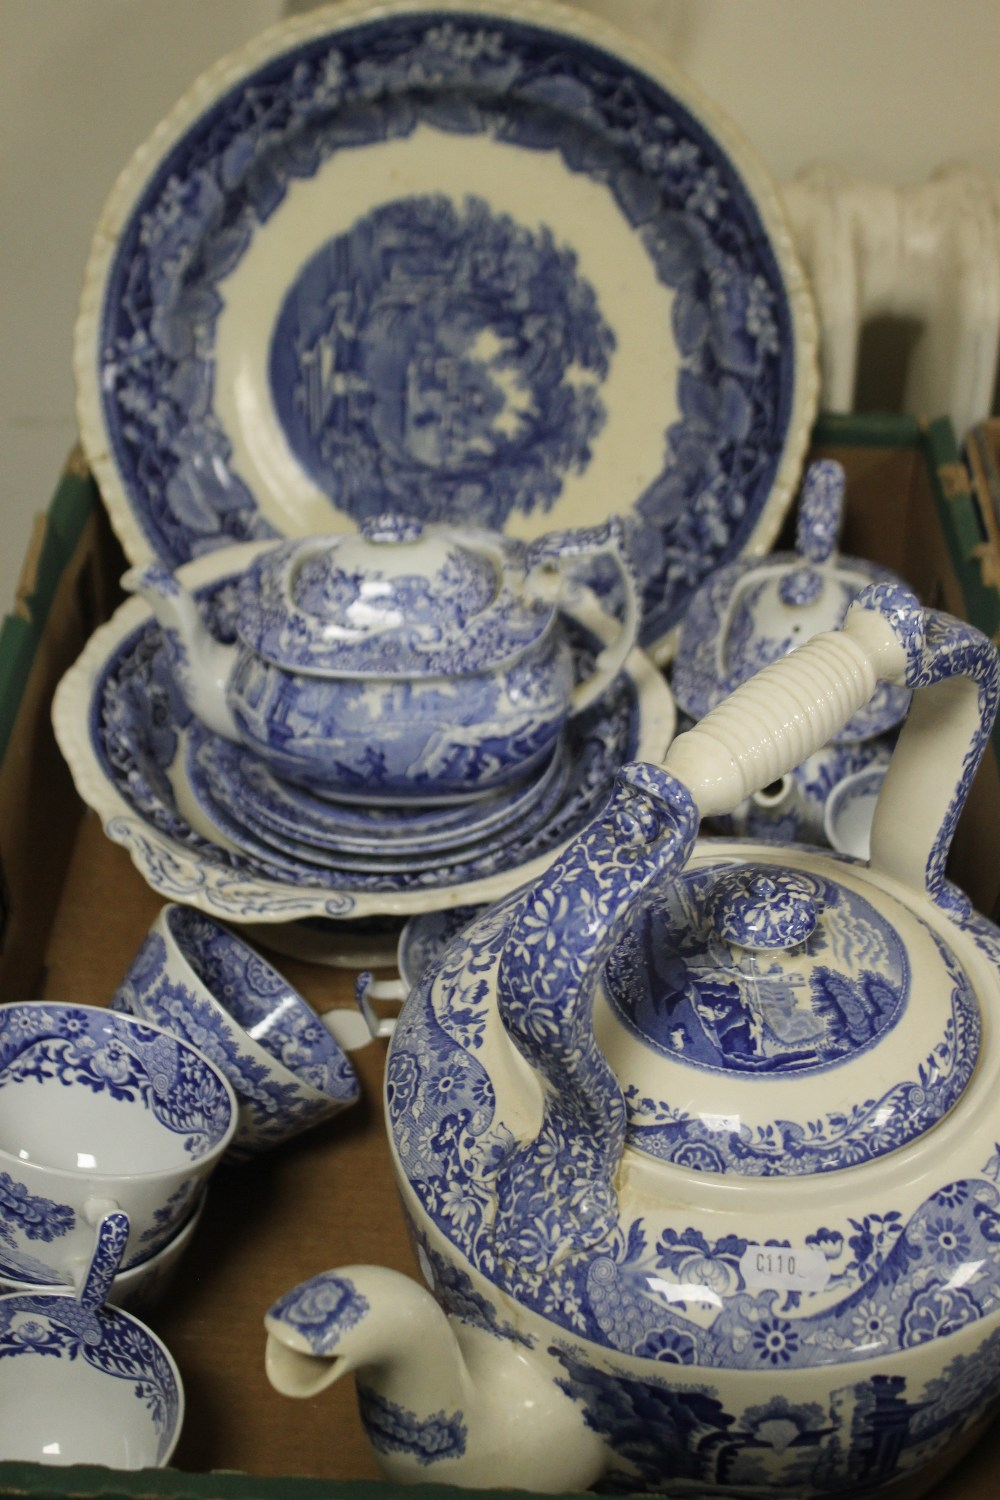 TWO TRAYS OF BLUE & WHITE CERAMICS TO INCLUDE SPODE (trays not included) - Image 2 of 3